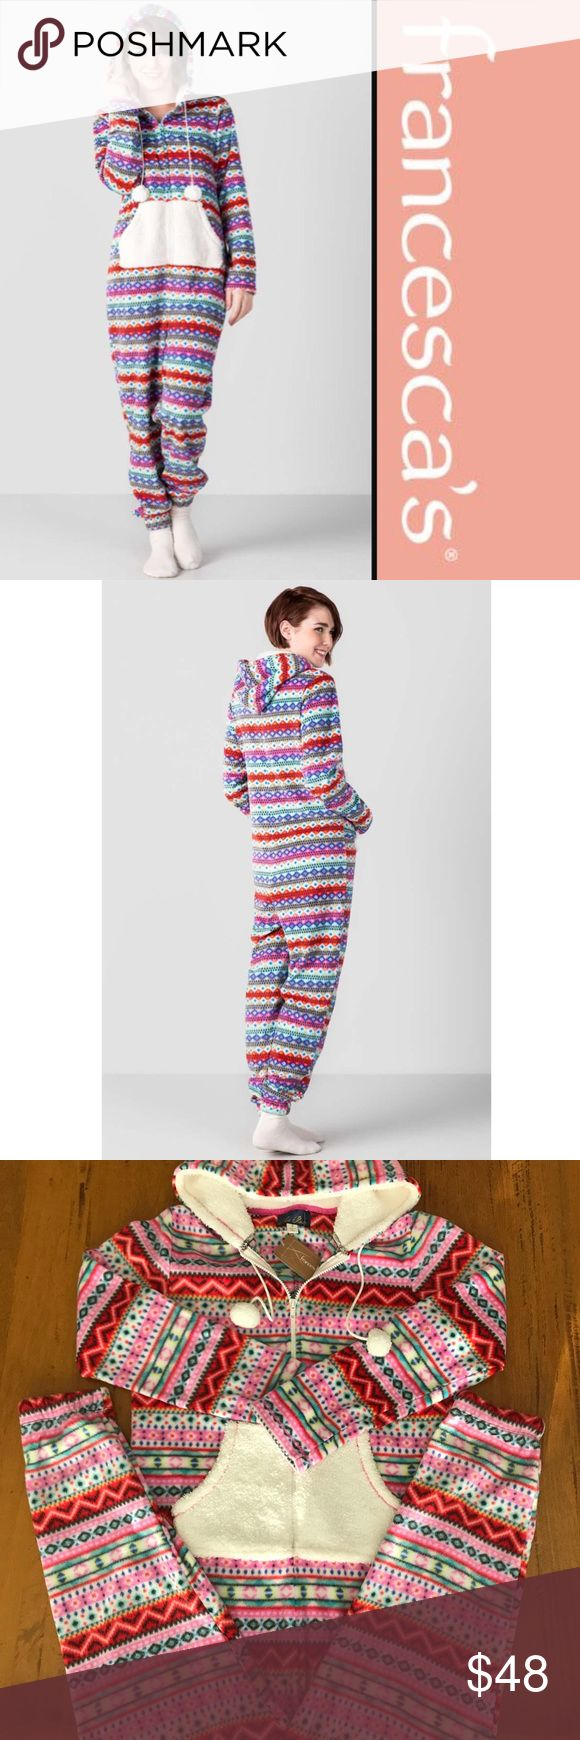 "Francesca's fleece pj onesies A colorful pattern finished with a hood and Pom poms.  59"" length from shoulder to hem 40"" chest 42"" waist 29"" inseam Francesca's Collections Intimates & Sleepwear Pajamas"